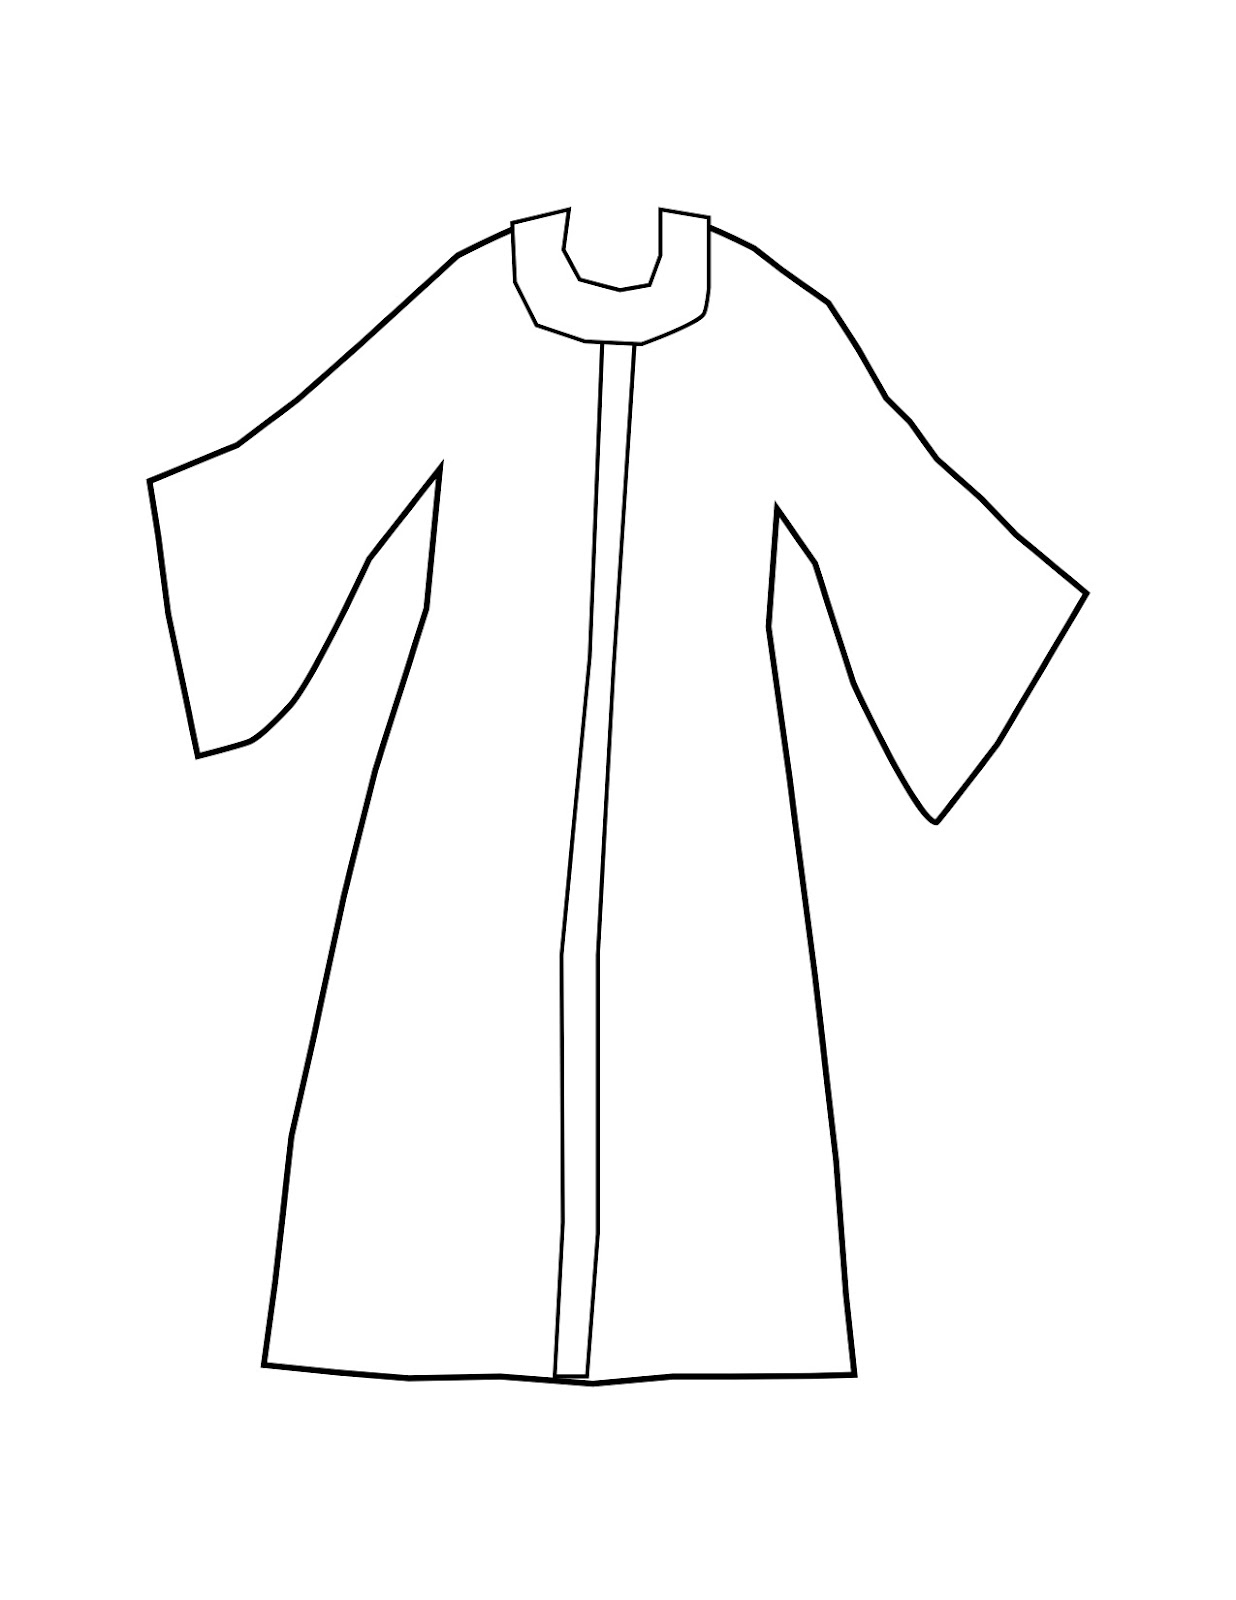 Free Picture Of A Coat Download Free Clip Art Free Clip Art On Clipart Library